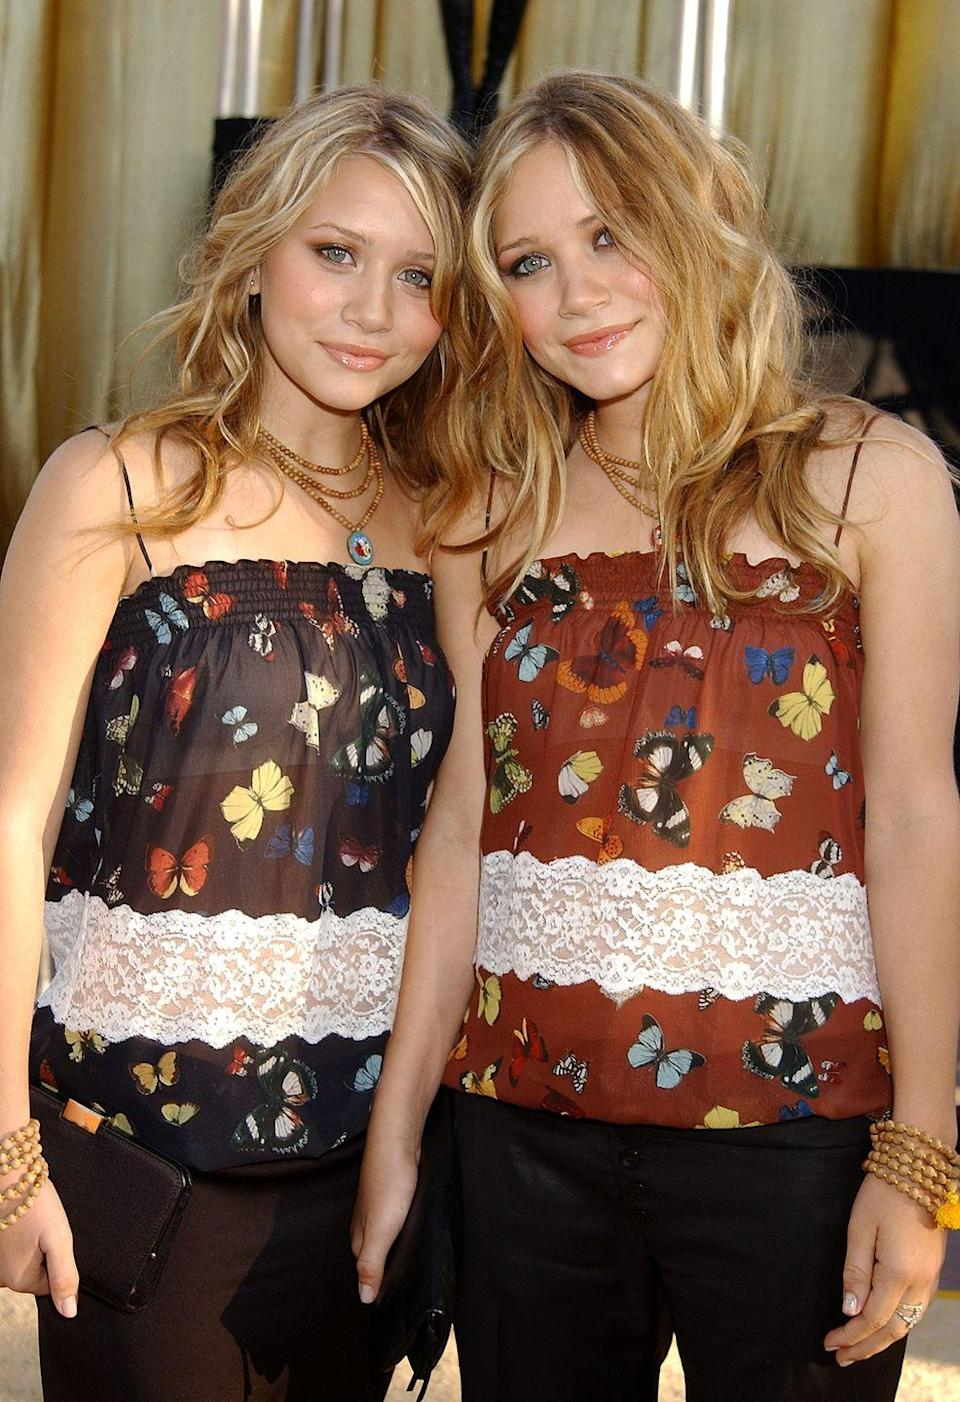 "<p>Almost a decade later, the Olsen twins were still setting hair trends. Mary-Kate and Ashley's ""beach wave"" period was a big one and resulted in many curling iron burns over here.</p>"